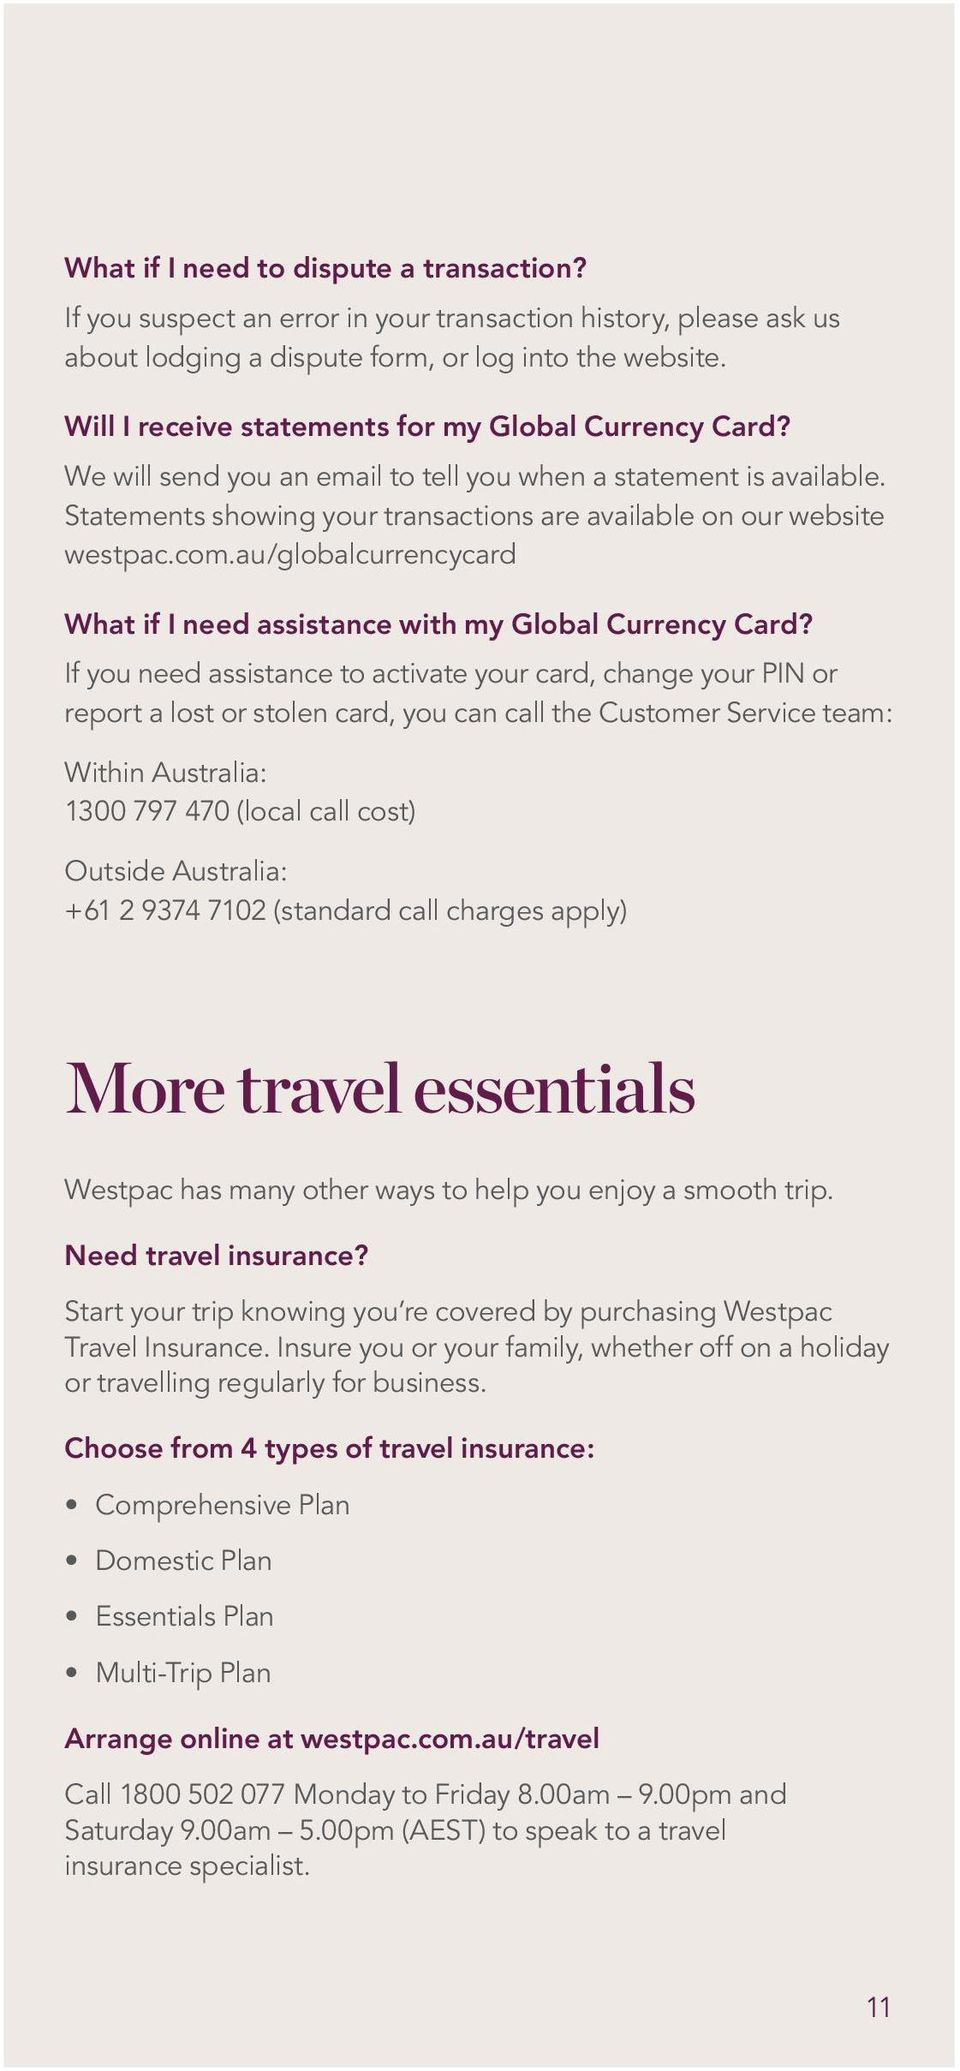 global currency card travel card save that could you money